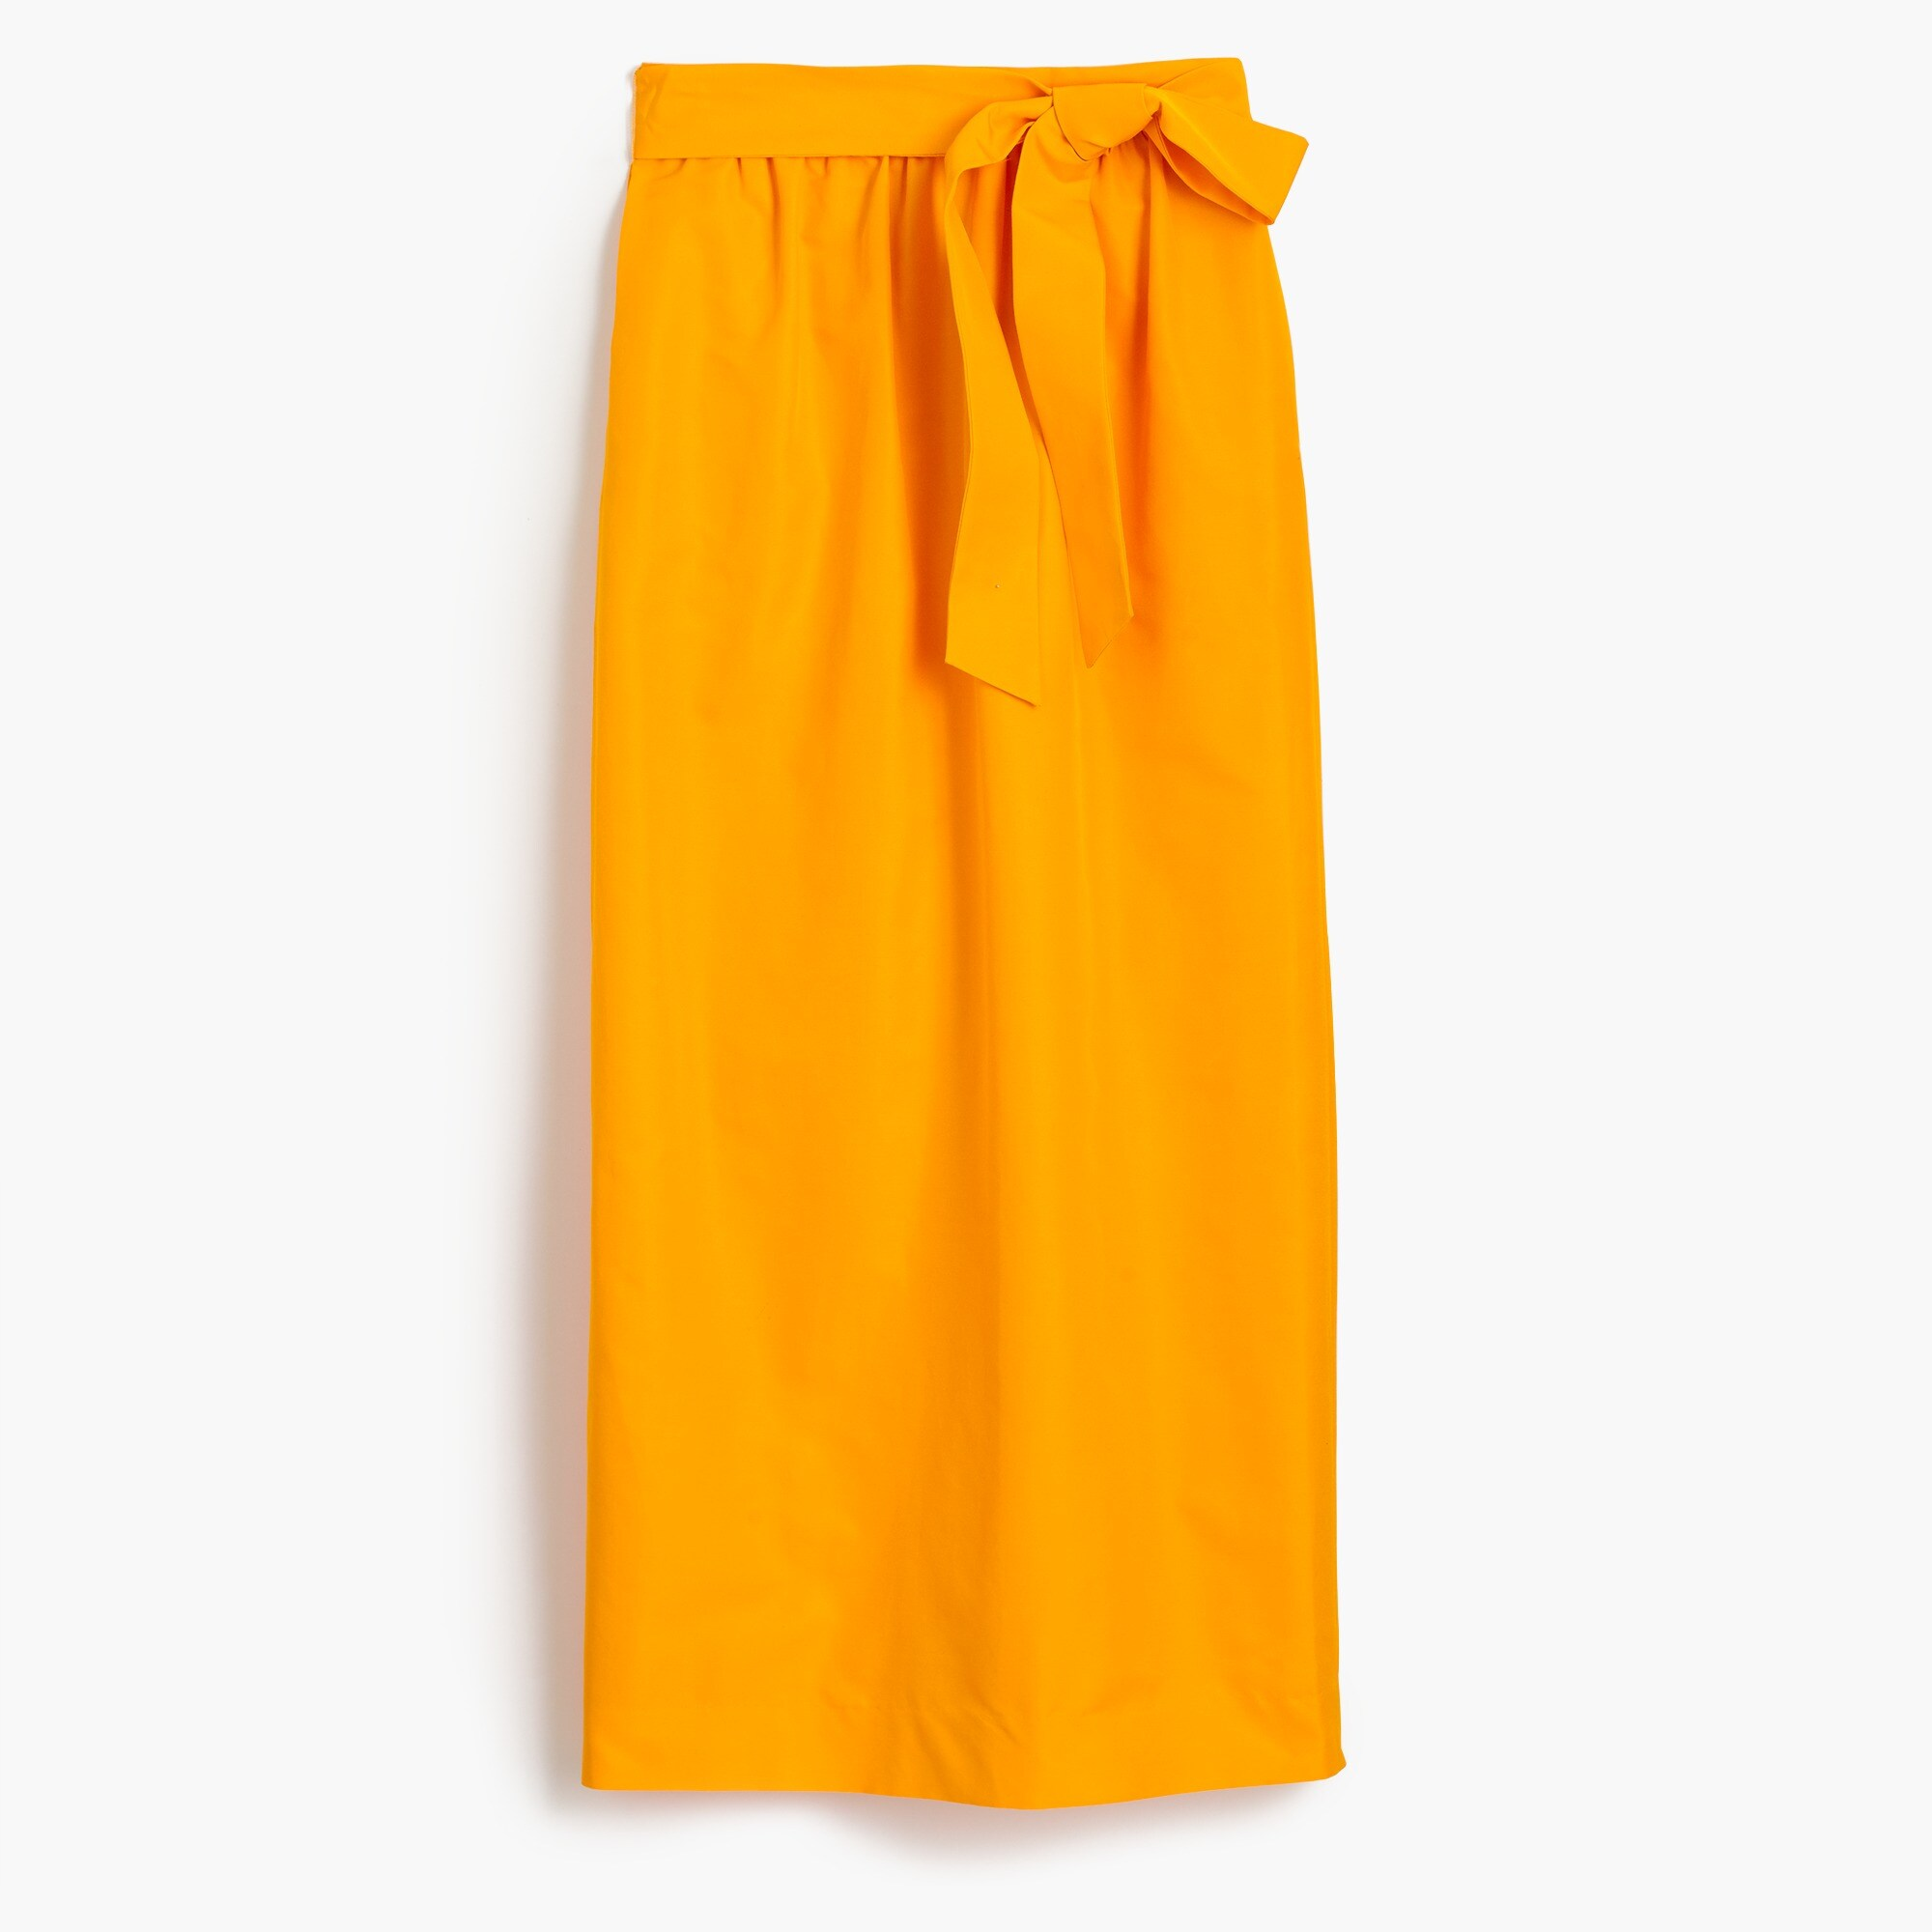 Petite tie-waist skirt in faille